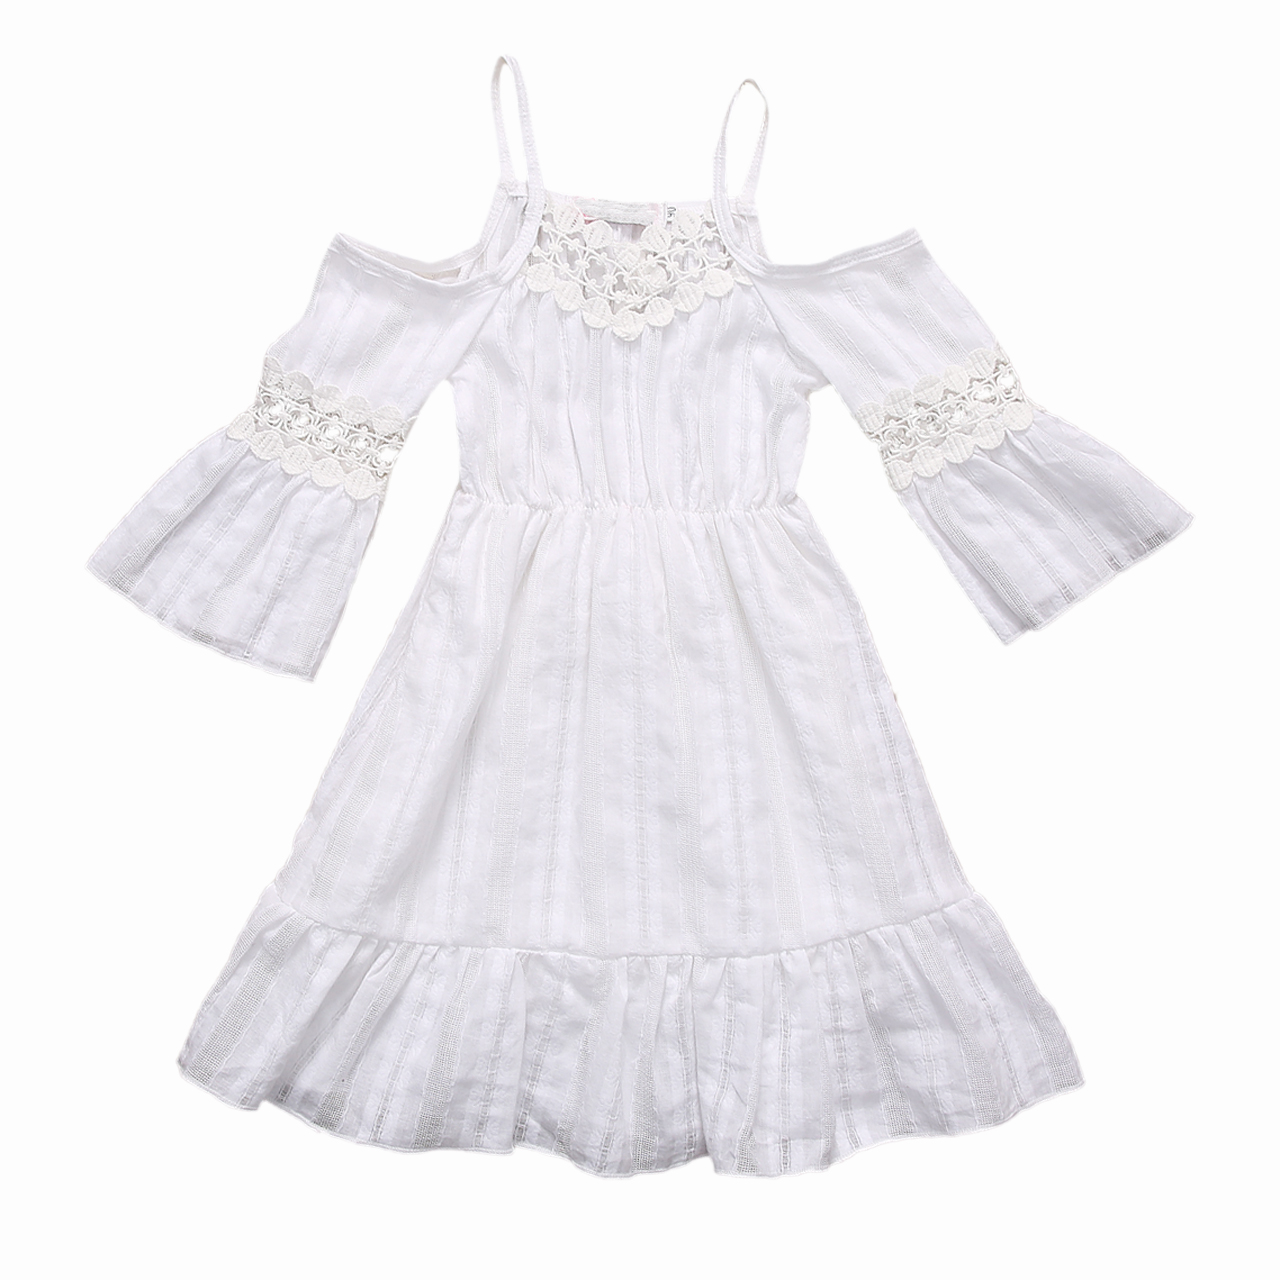 2017 Toddler Kids Baby Girl Summer Dress Off Shoulder White Lace Dress Princess Girls Long Dress Children Clothes 2-7Y fashion kids girls toddler baby lace princess party dress clothes 2 7y